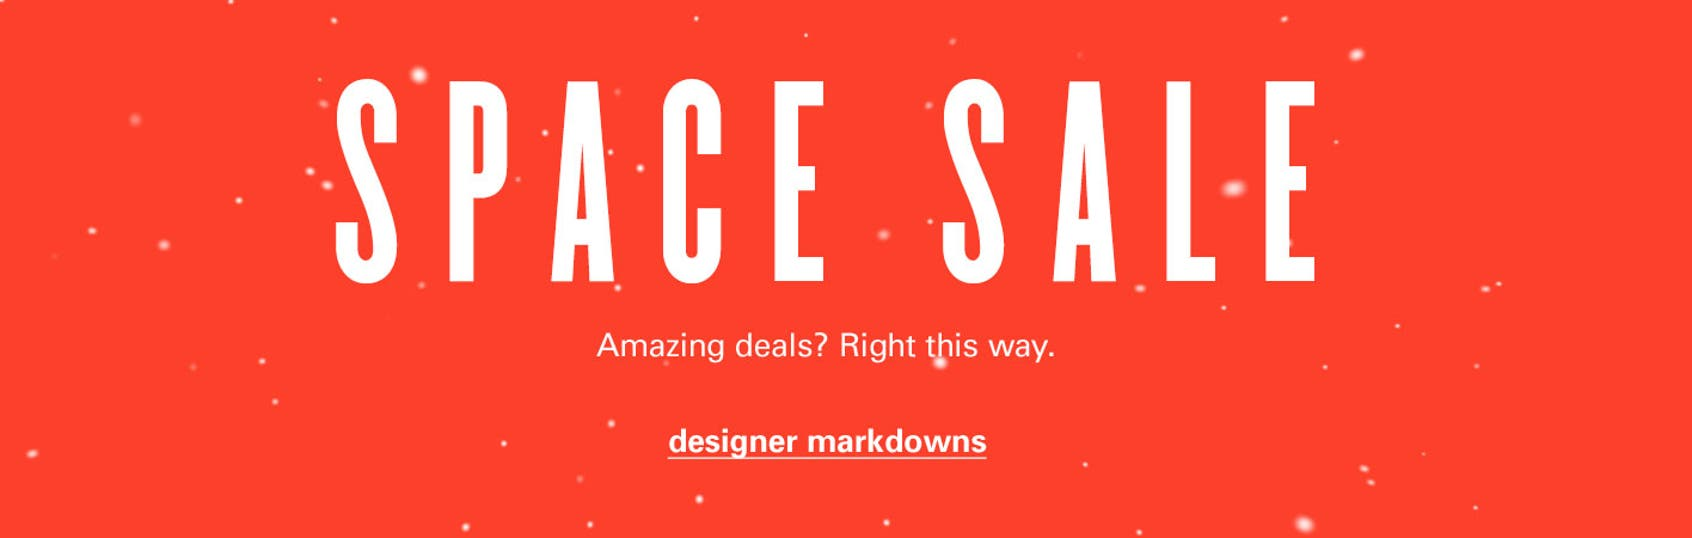 SPACE sale: designer markdowns.